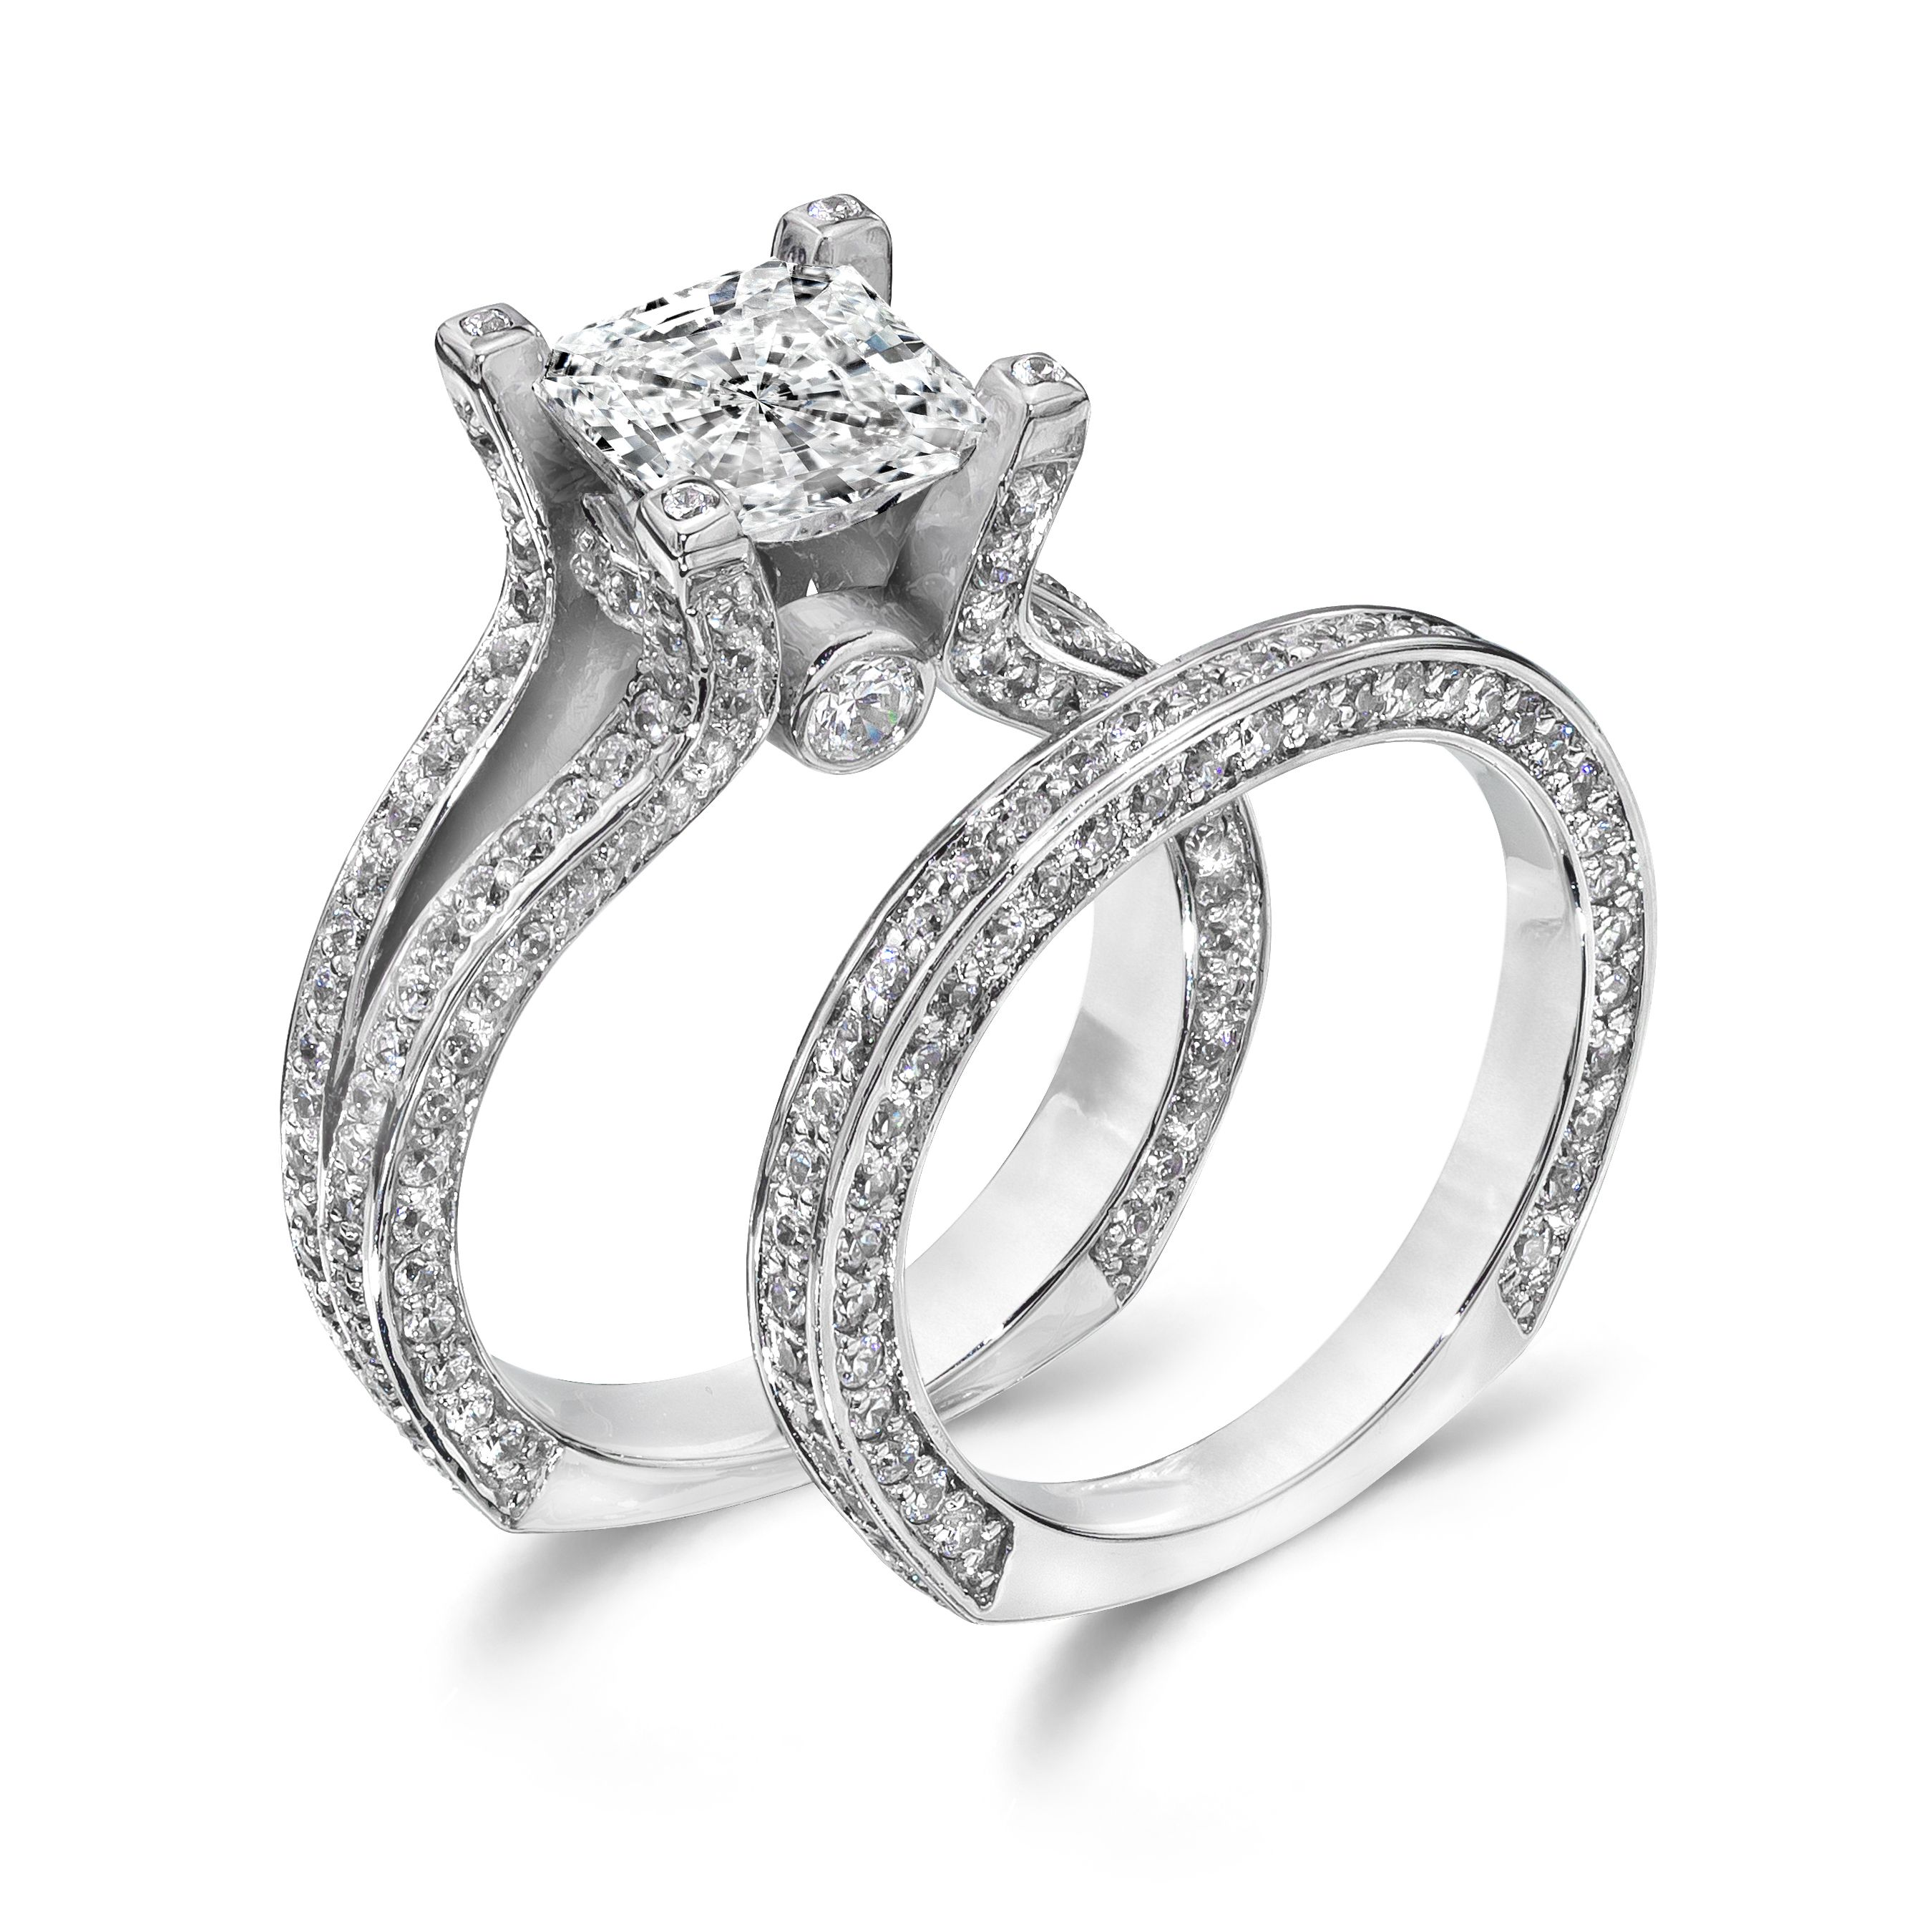 A Closer Look At Our Princess Cut 2 0 Carat Cz Wedding Ring Set